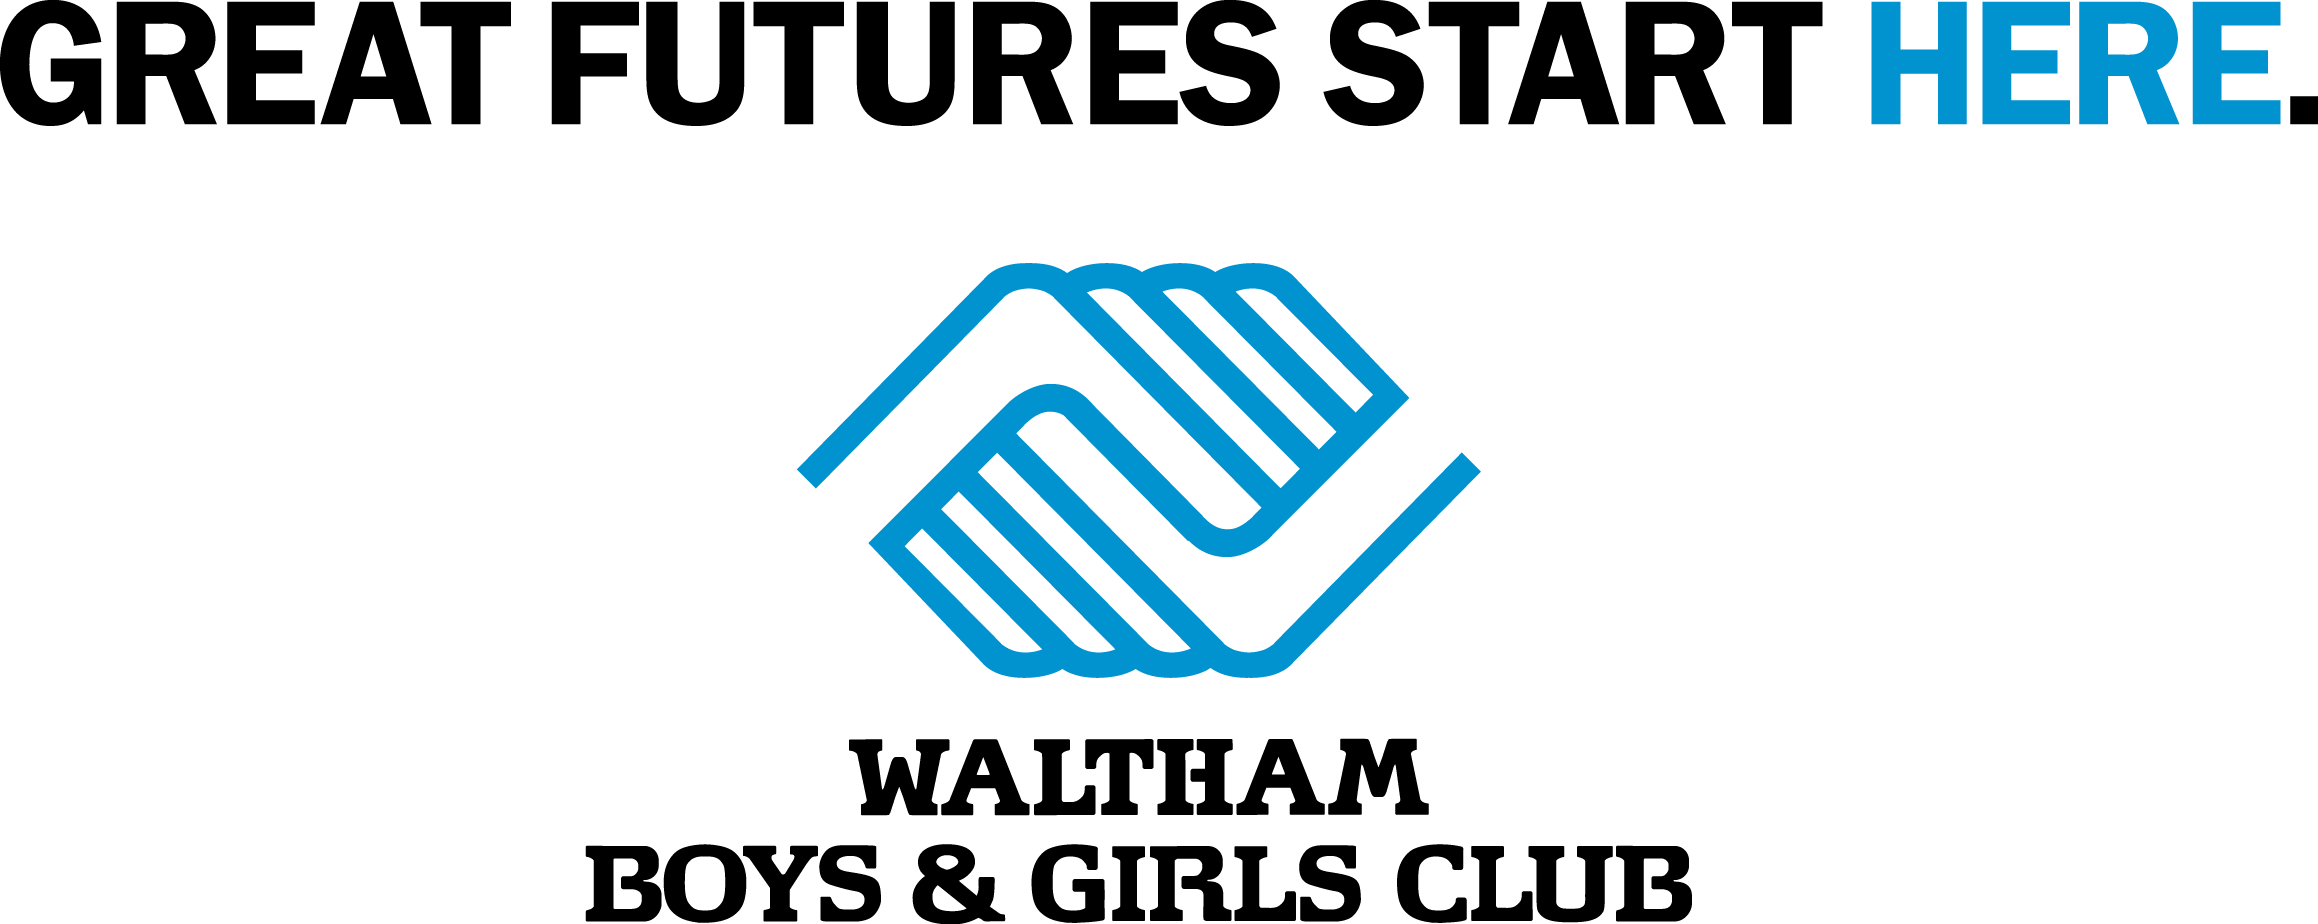 Waltham Boys and Girls Club